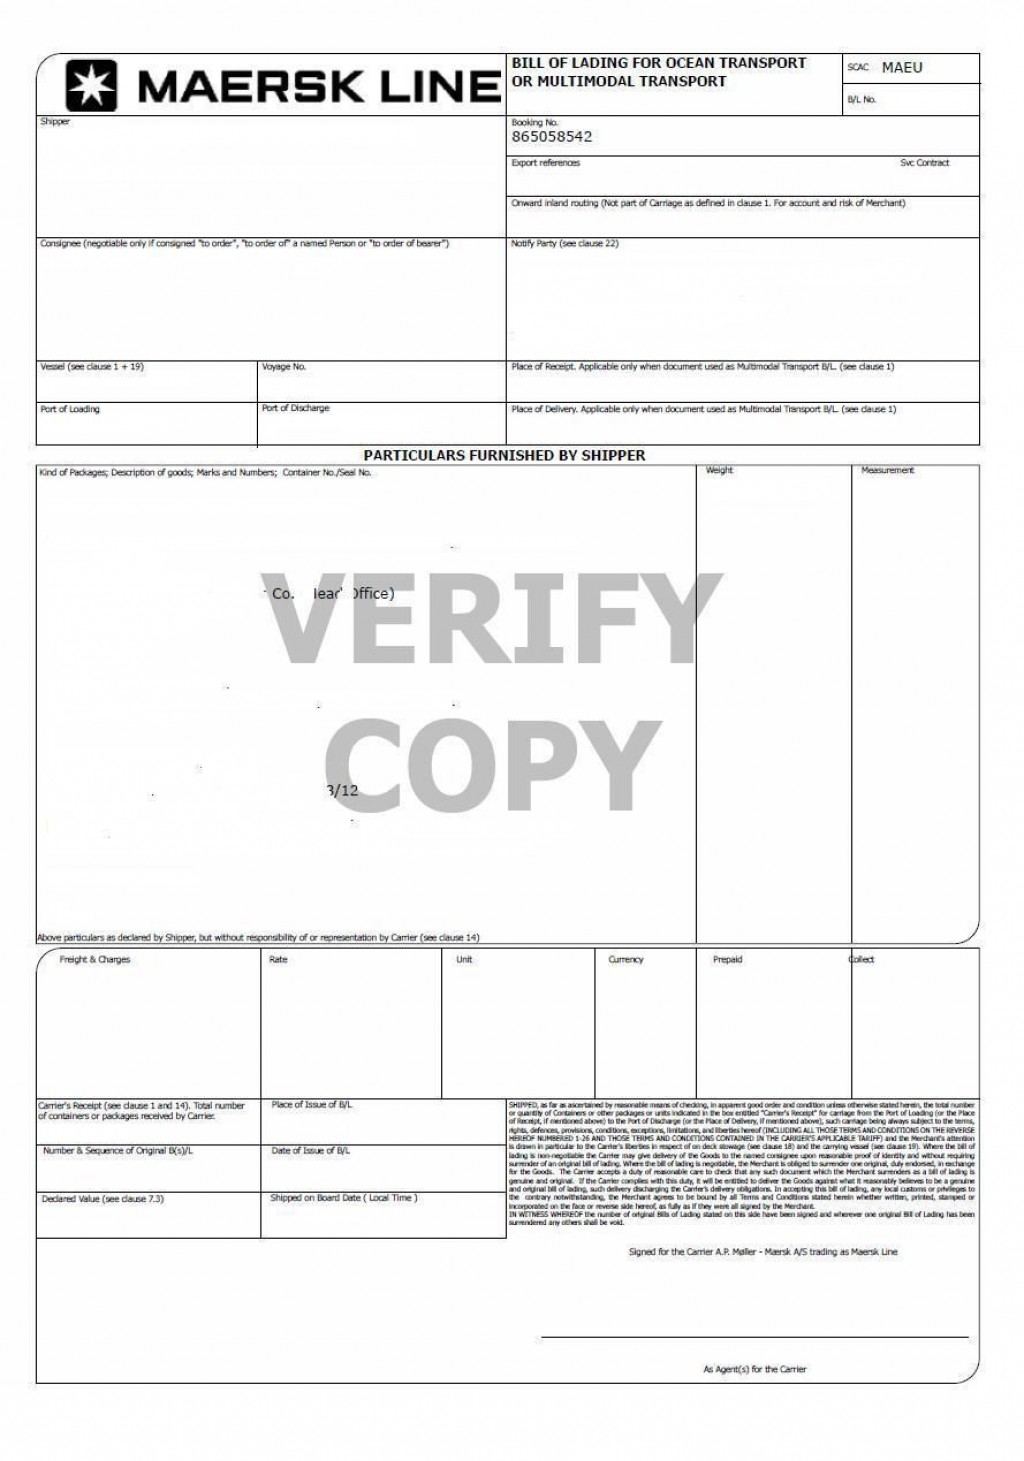 007 Fantastic Bill Of Lading Template Microsoft Word Picture Large